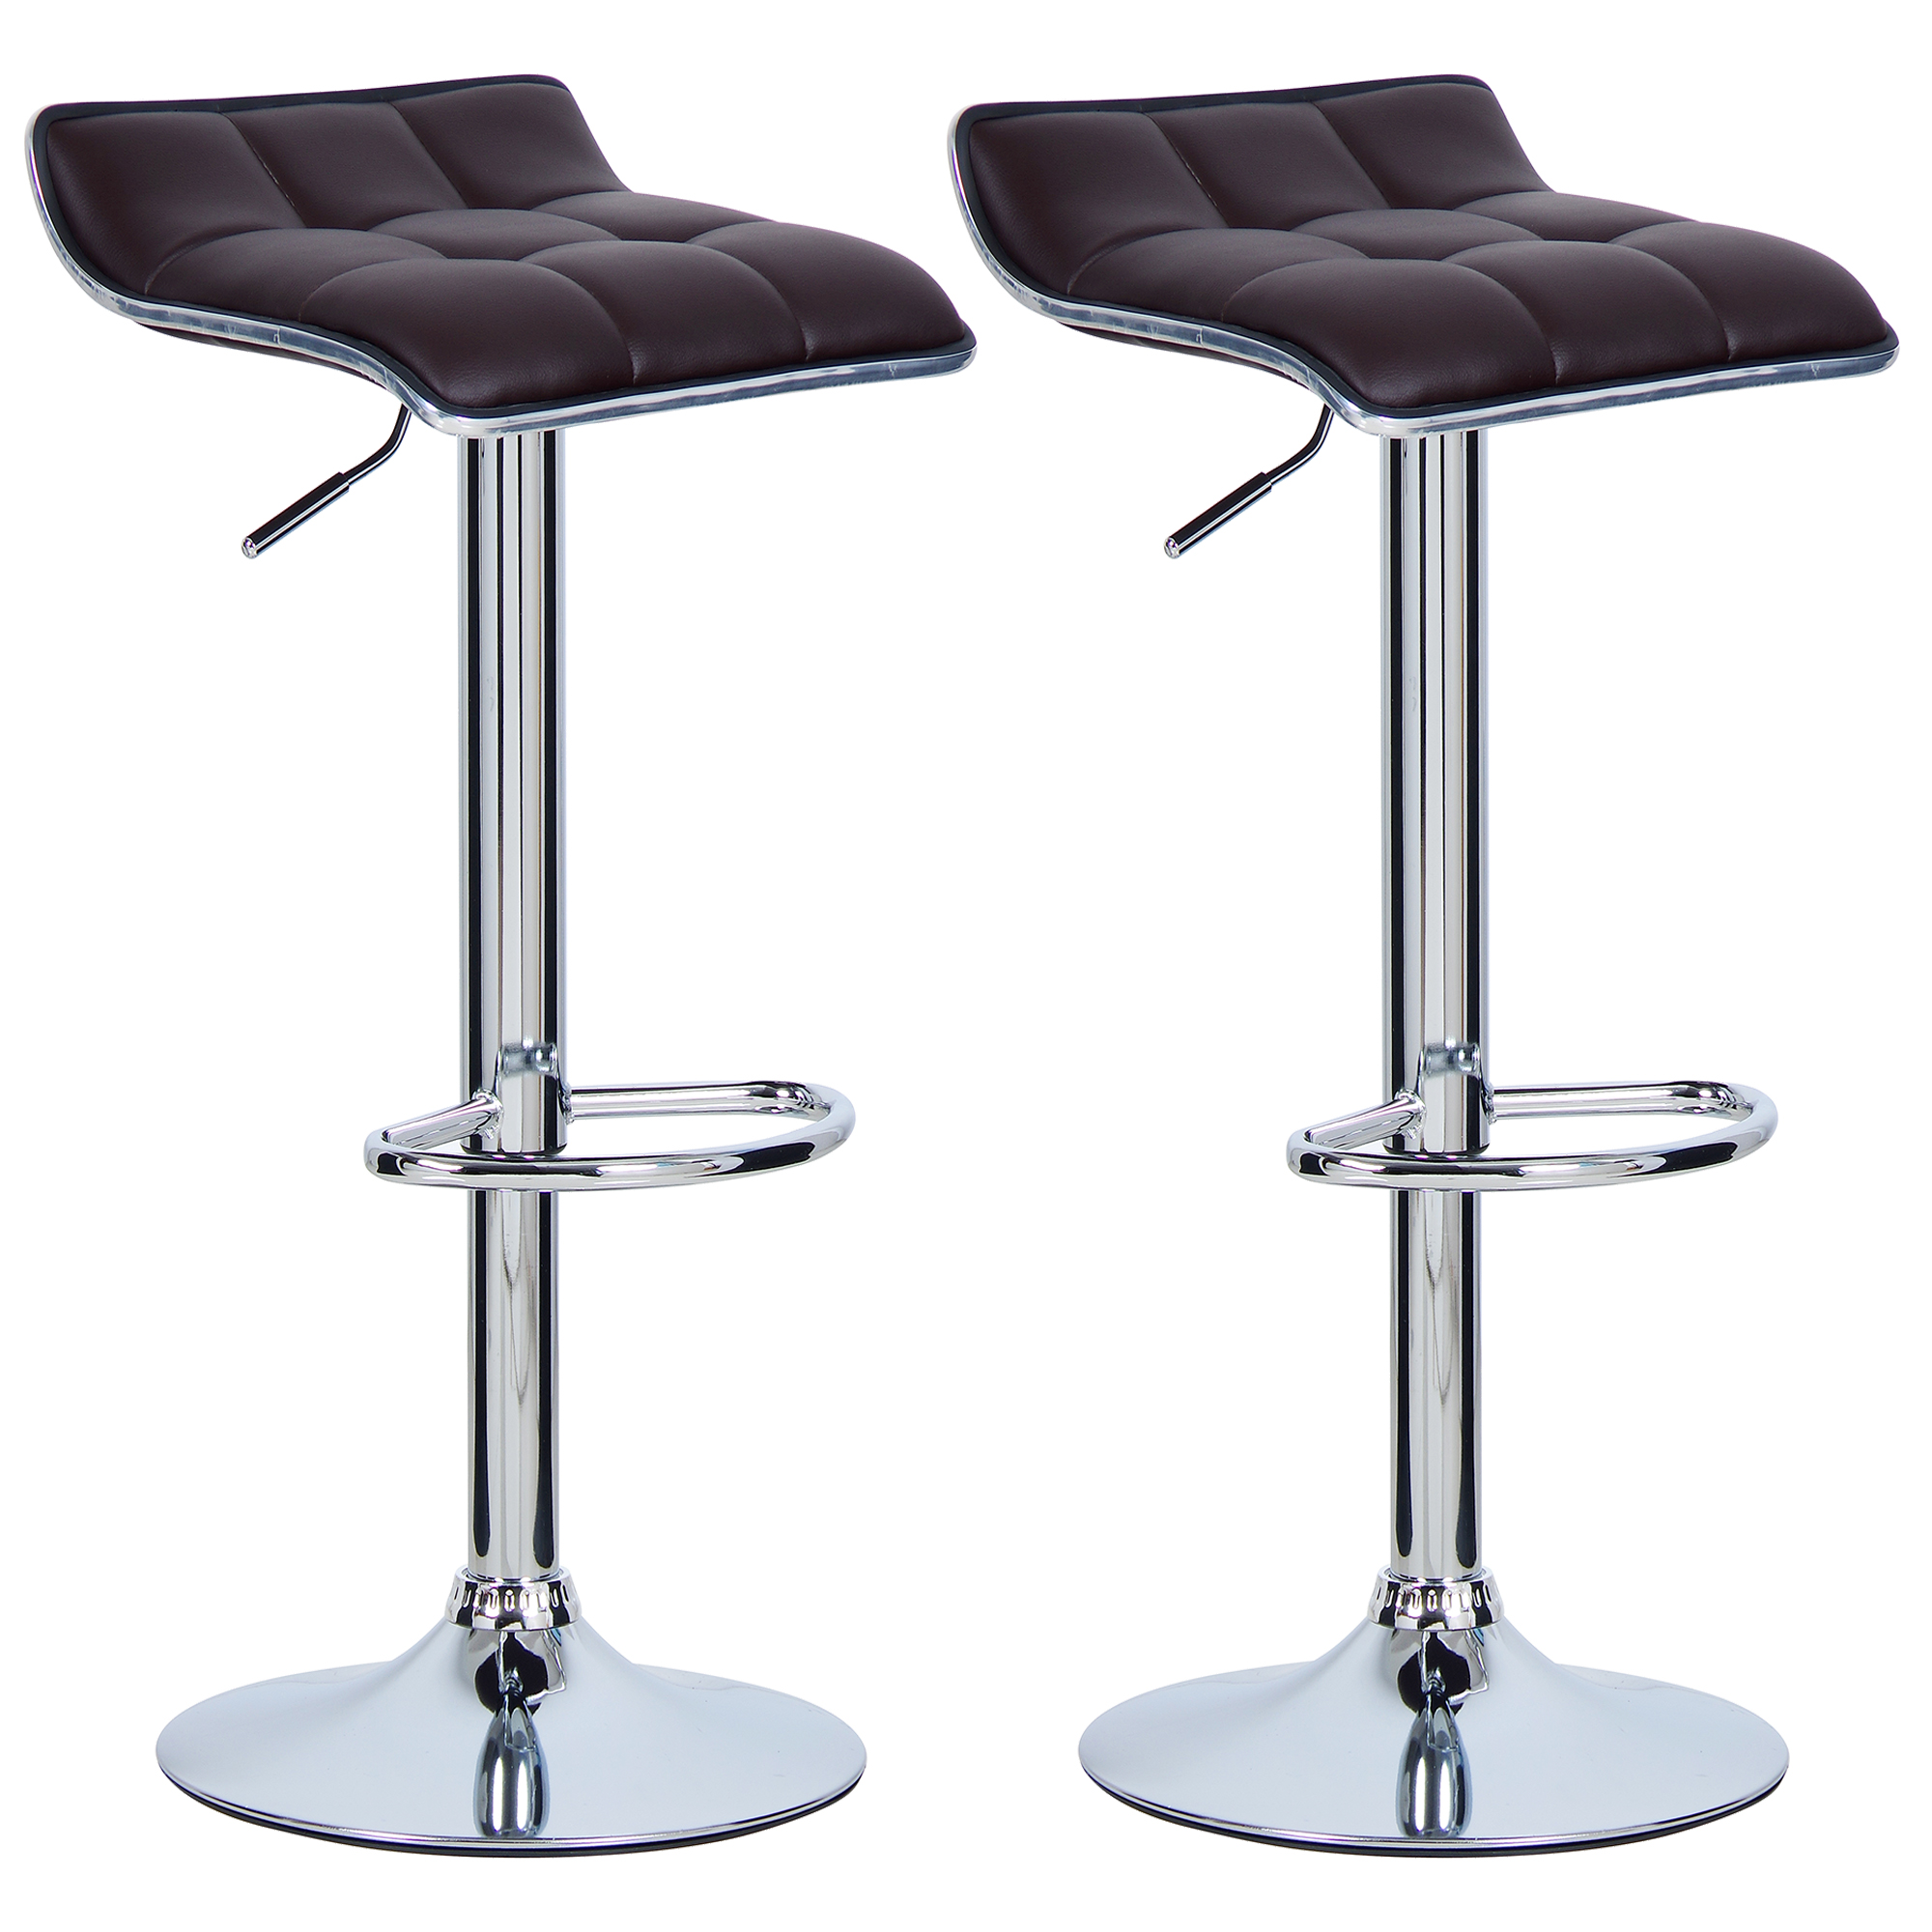 Set Of 2 Bar Stools Barstool Breakfast Kitchen Stool Chair Adjustable U027 Ebay